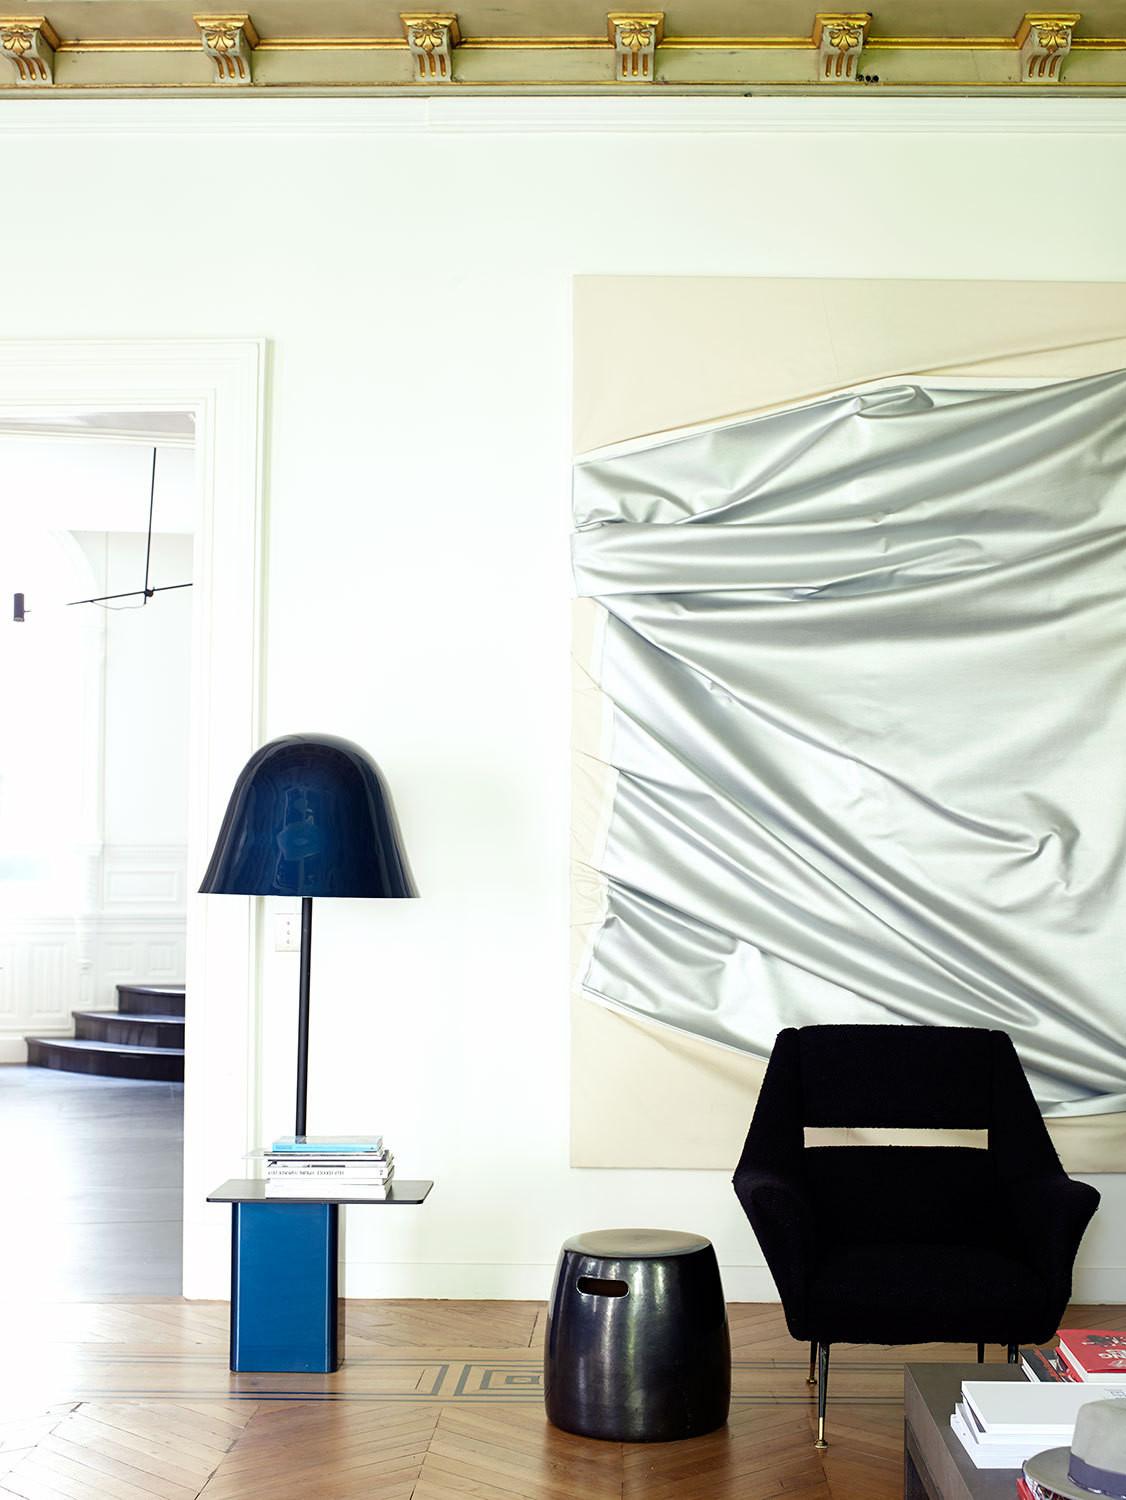 Steven Parrino's <em>Death in America #2 </em>(2005) is displayed near the Bells floor lamp by Ronan & Erwan Bouroullec.